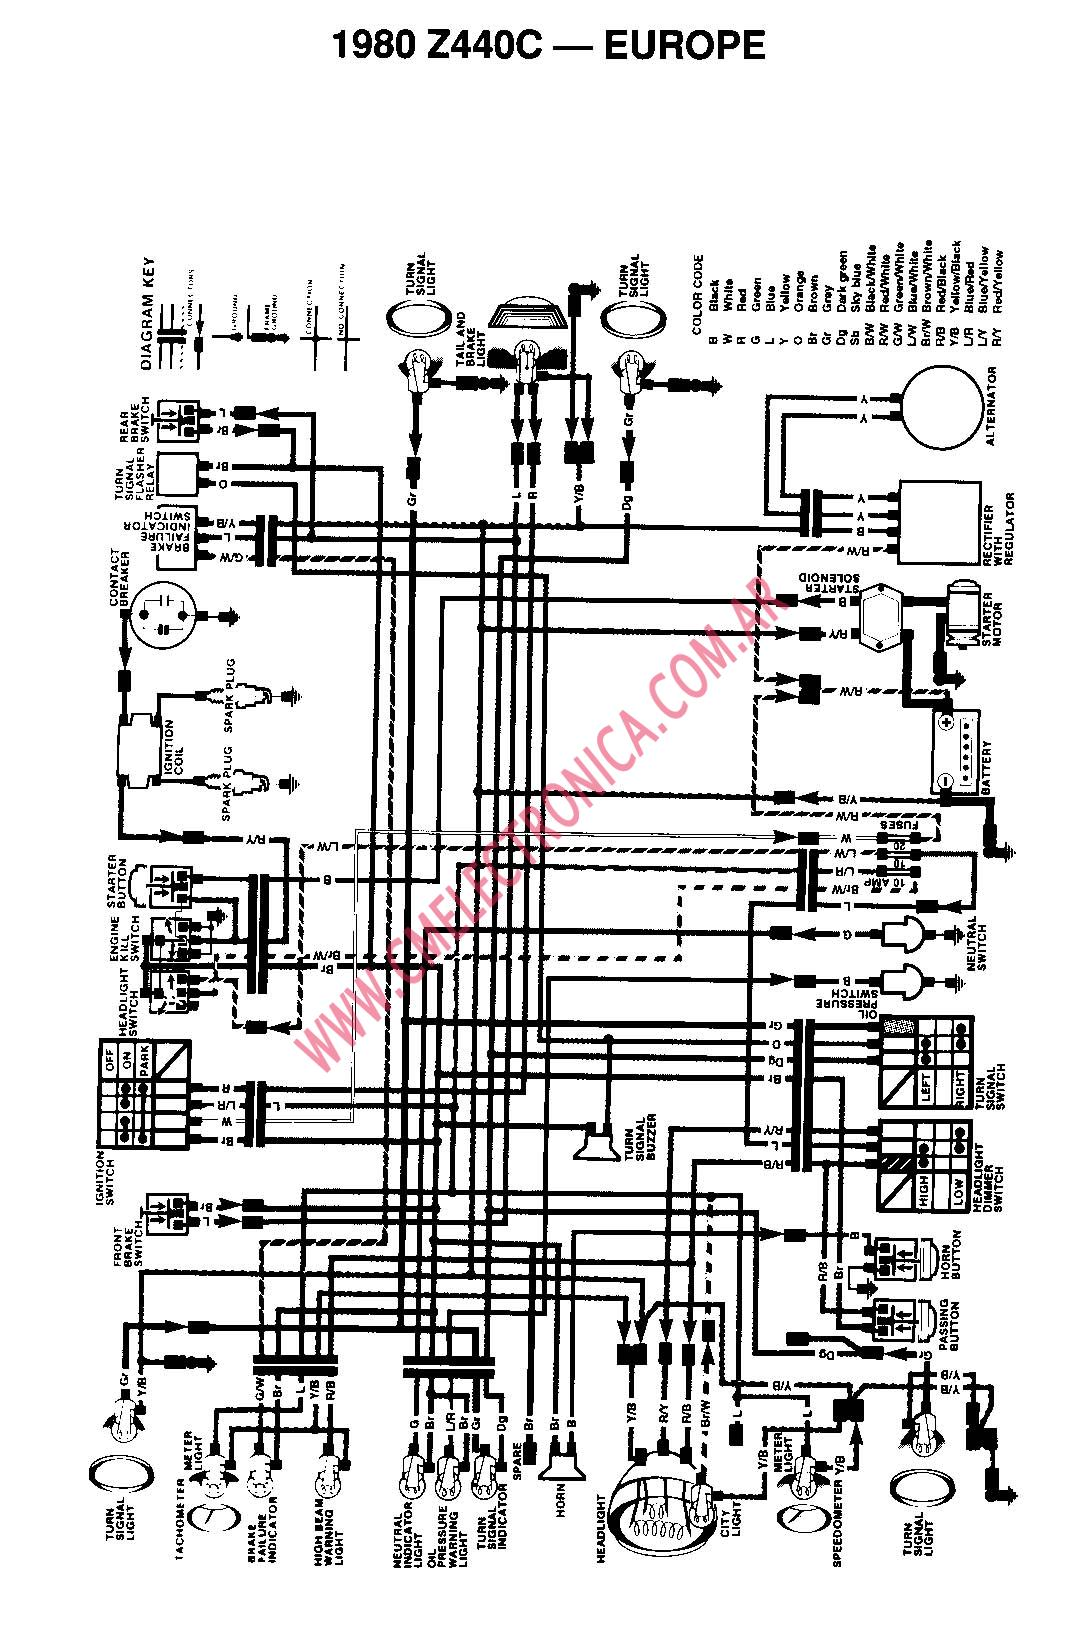 351270 2000 Scrambler 500 4x4 likewise Kawasaki Bayou 220 Ignition Switch Wiring Diagram furthermore 309880 Wiring Diagram 1987 Bayou Klf 300 A as well 97 Kawasaki Prairie 400 Wiring Diagram further Kawasaki Kz1000p Motorcycle Wiring Diagrams. on kawasaki bayou 220 wiring diagram